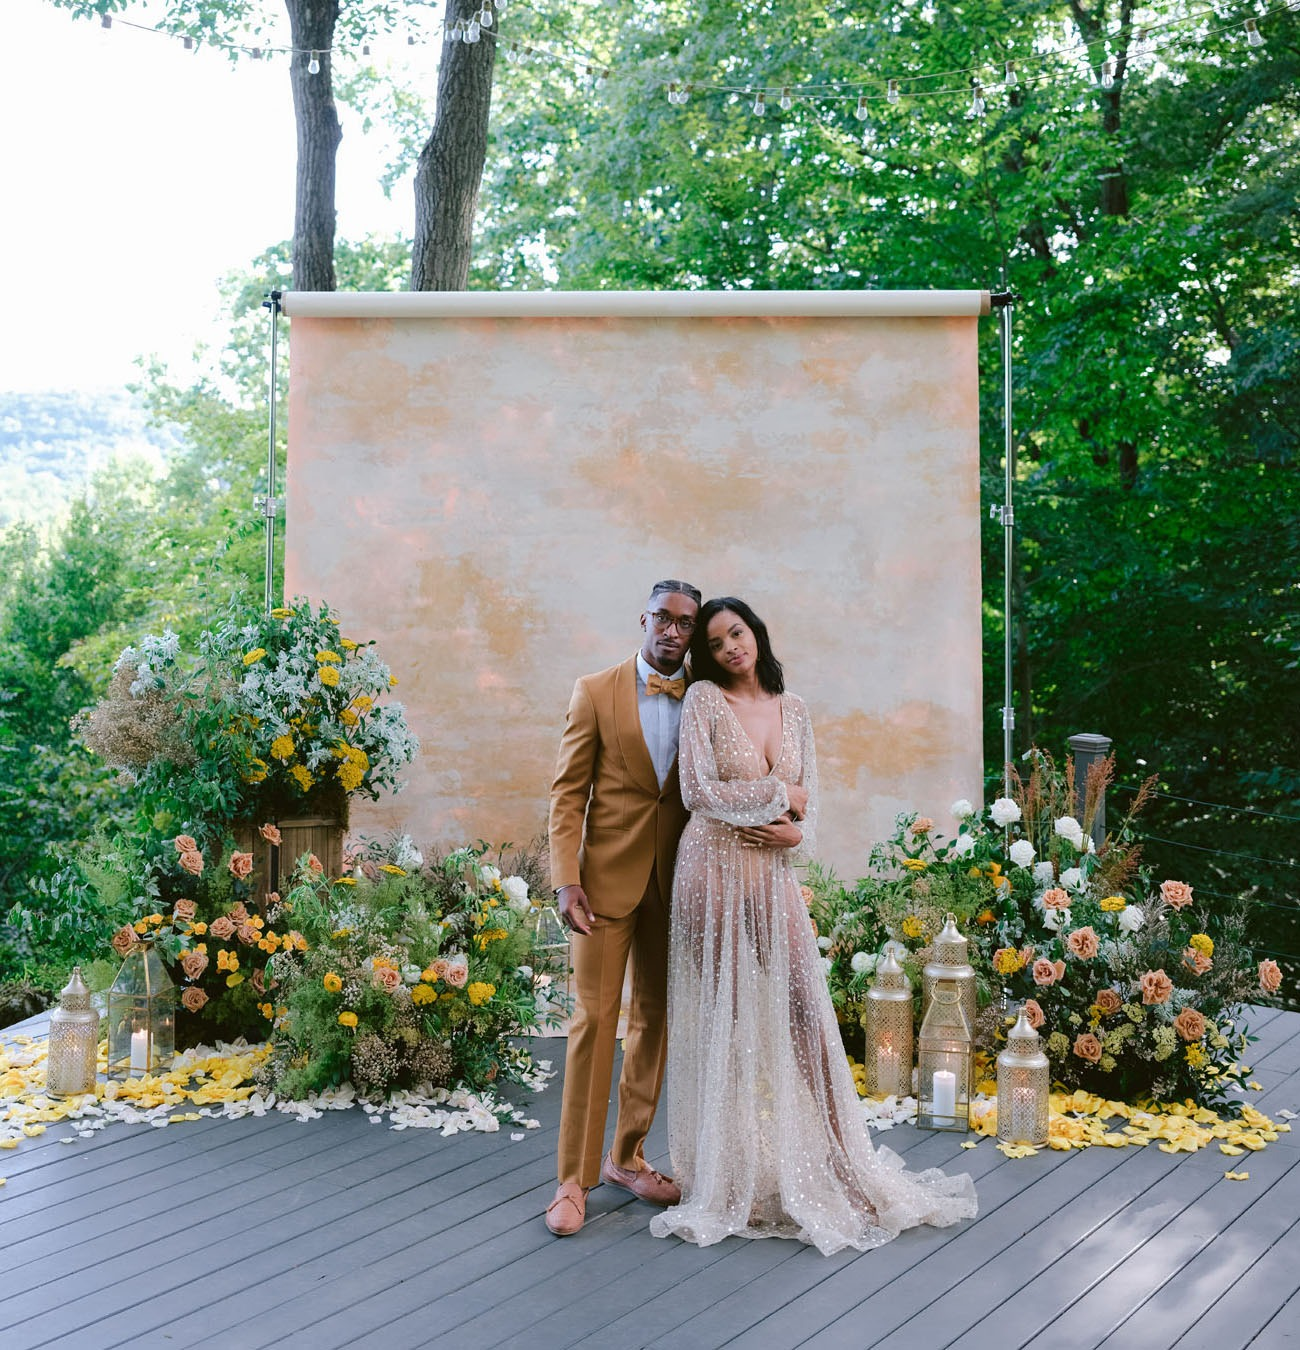 DIY wedding backdrop made of painted seamless photo paper